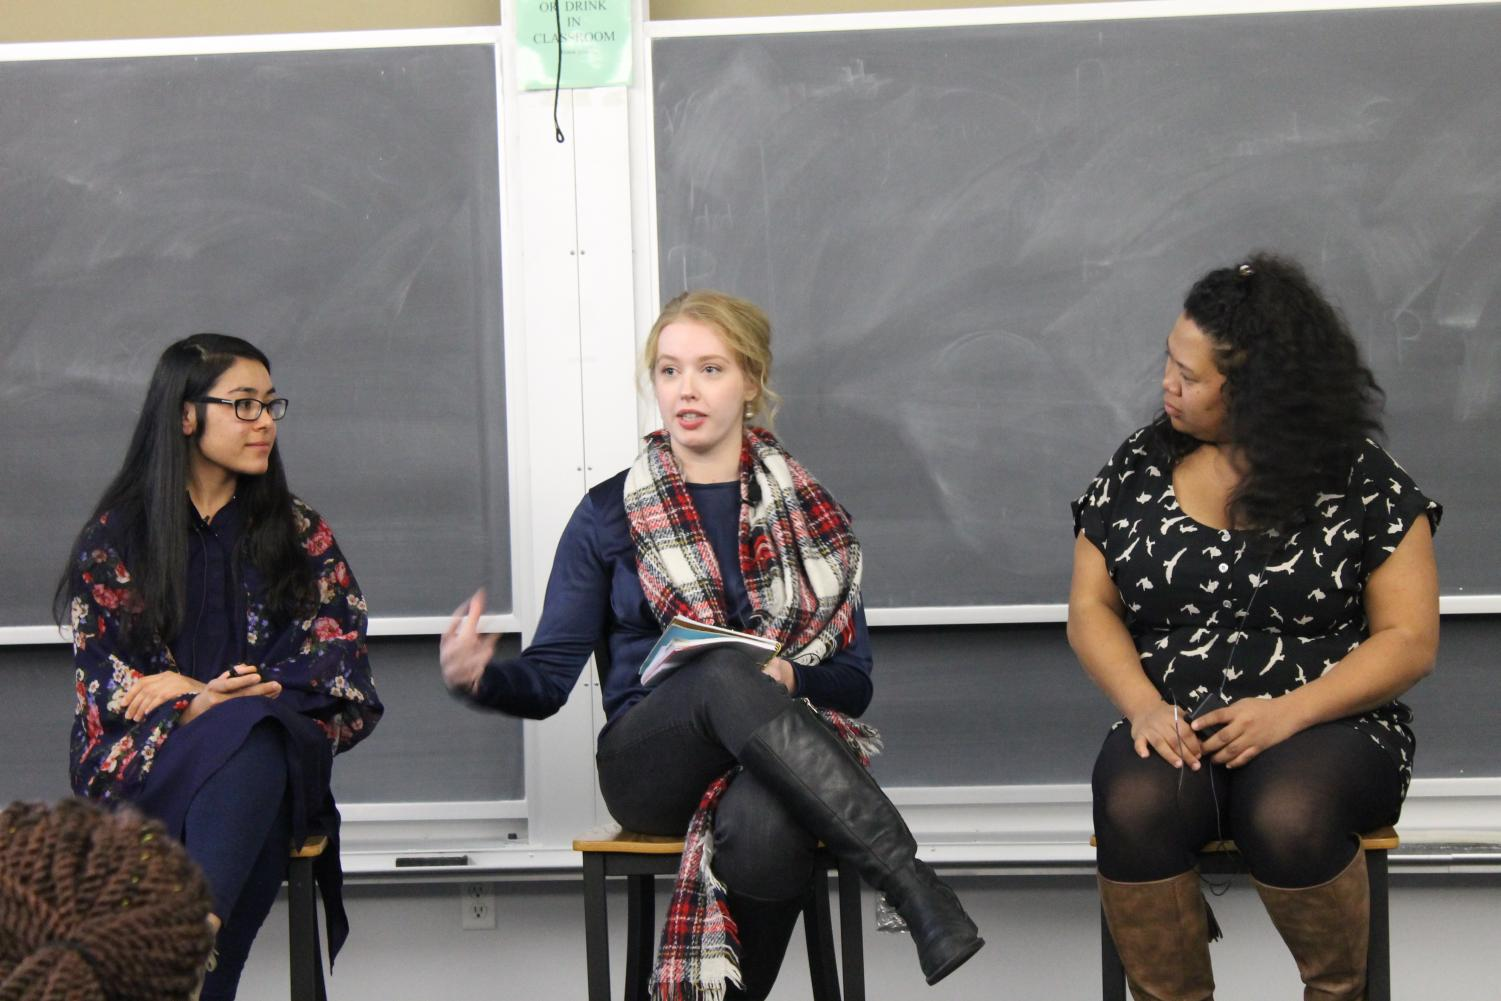 [LEFT TO RIGHT] Anila Bano ('20), Rebecka Green ('20), and Sthela Gun Holly Hanitrinirina ('19) participate in a rountable discussion.